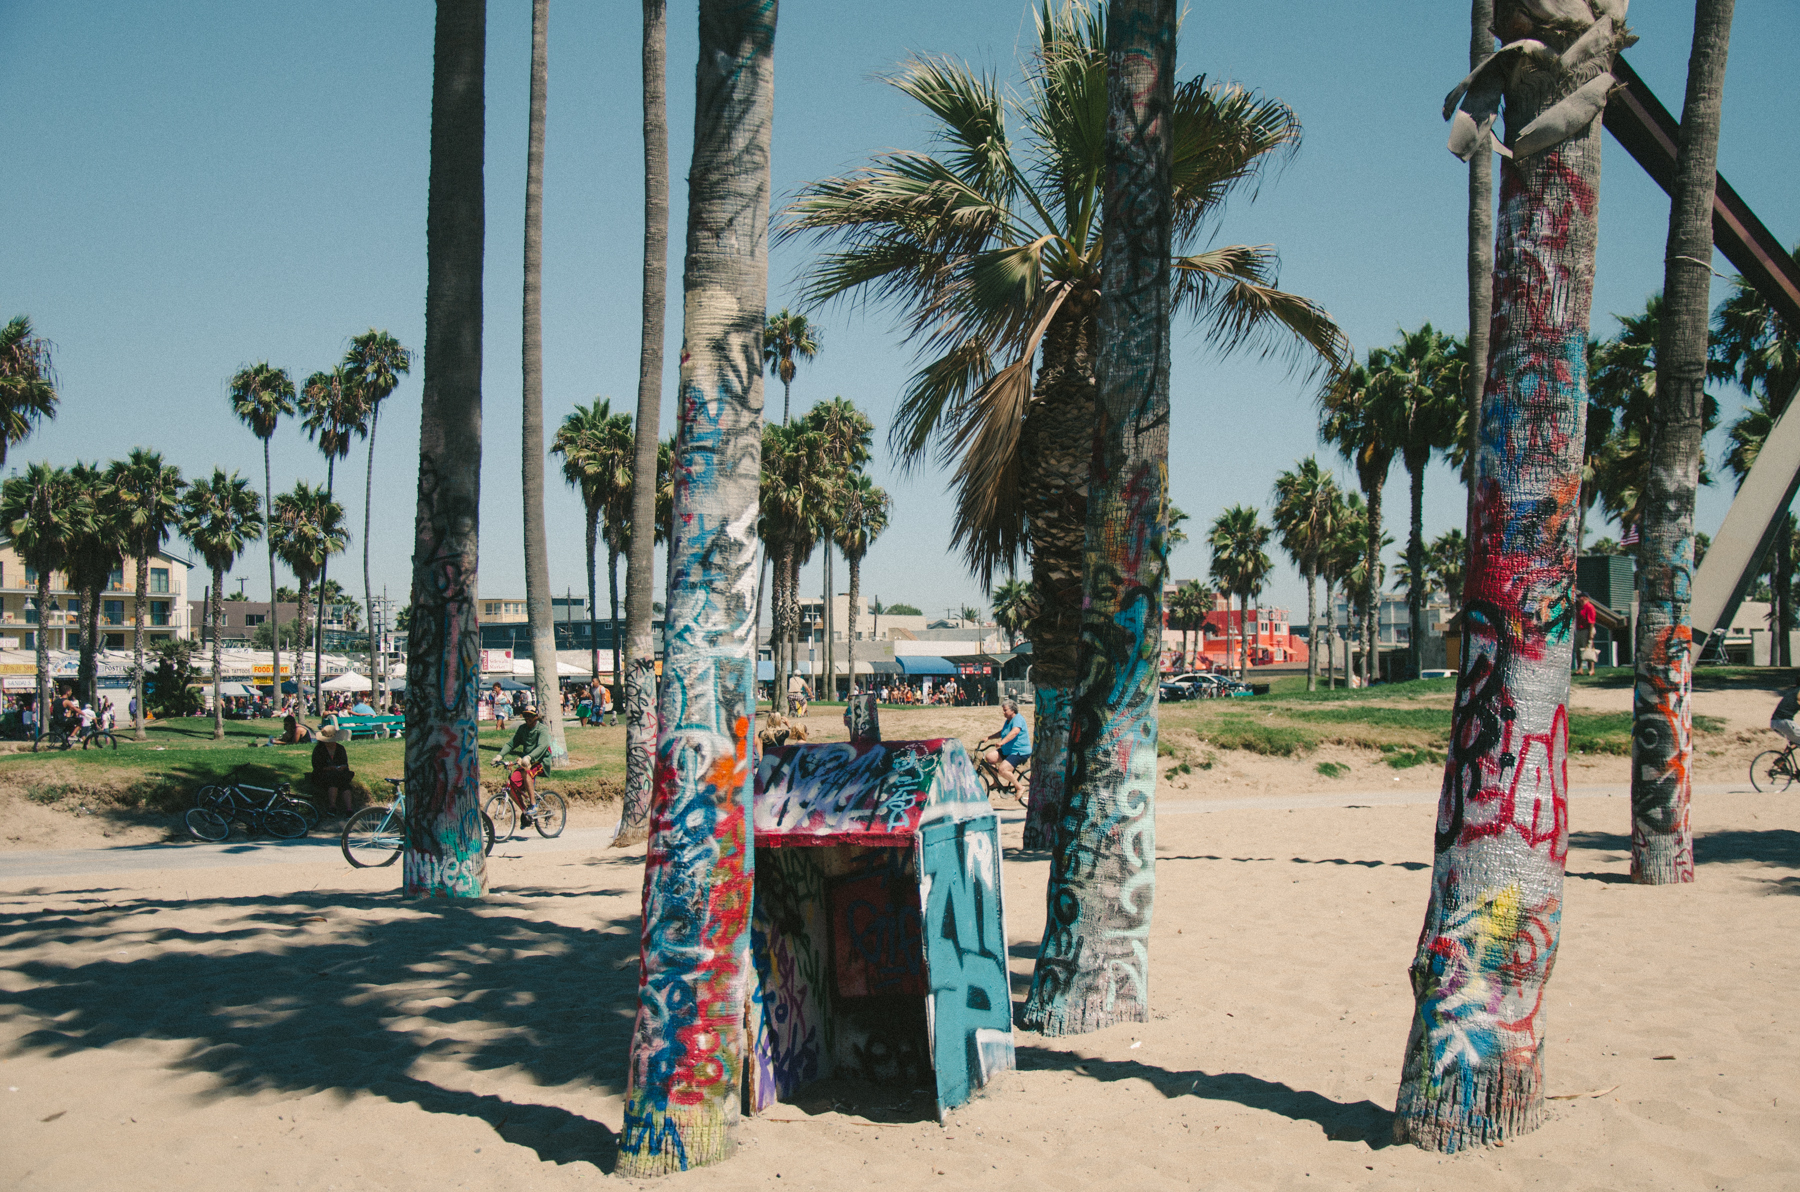 In Los Angeles, even the palm trees are covered in graffiti.